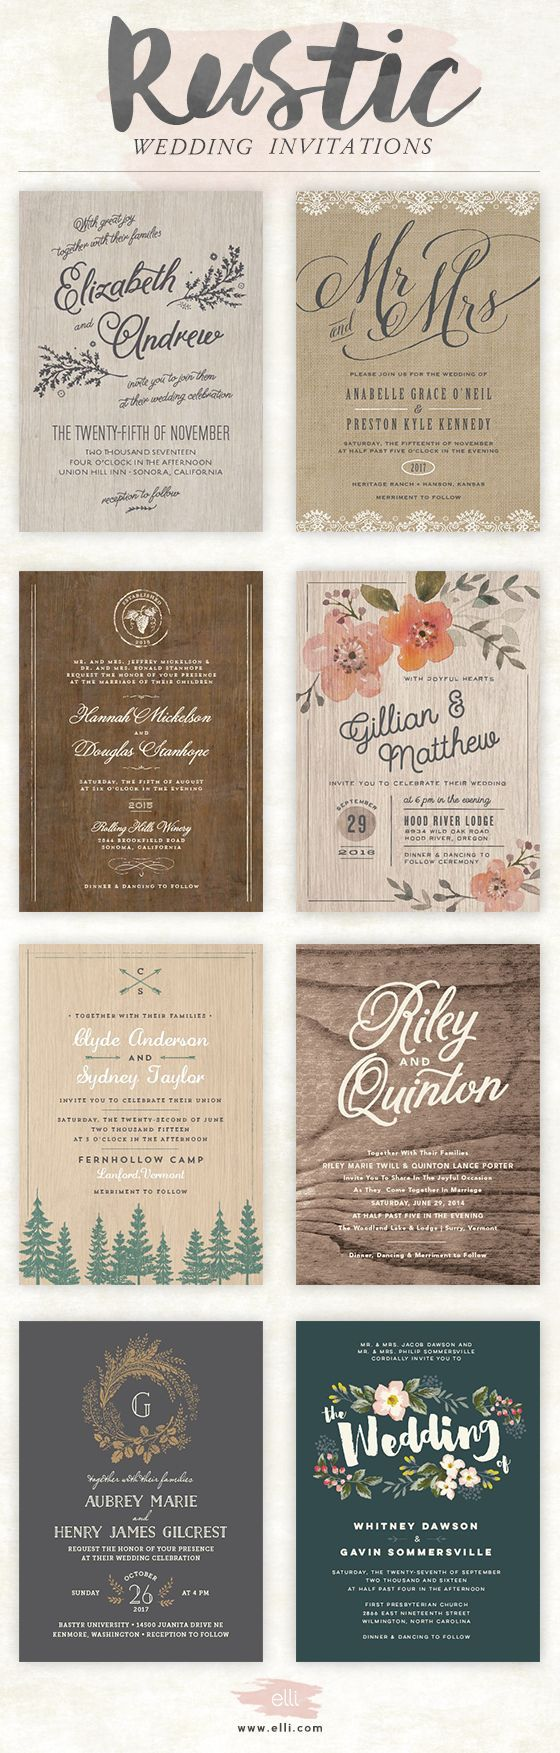 casual evening wedding invitation wording%0A Rustic wedding invitations   bellacollina com   Bella Collina Weddings